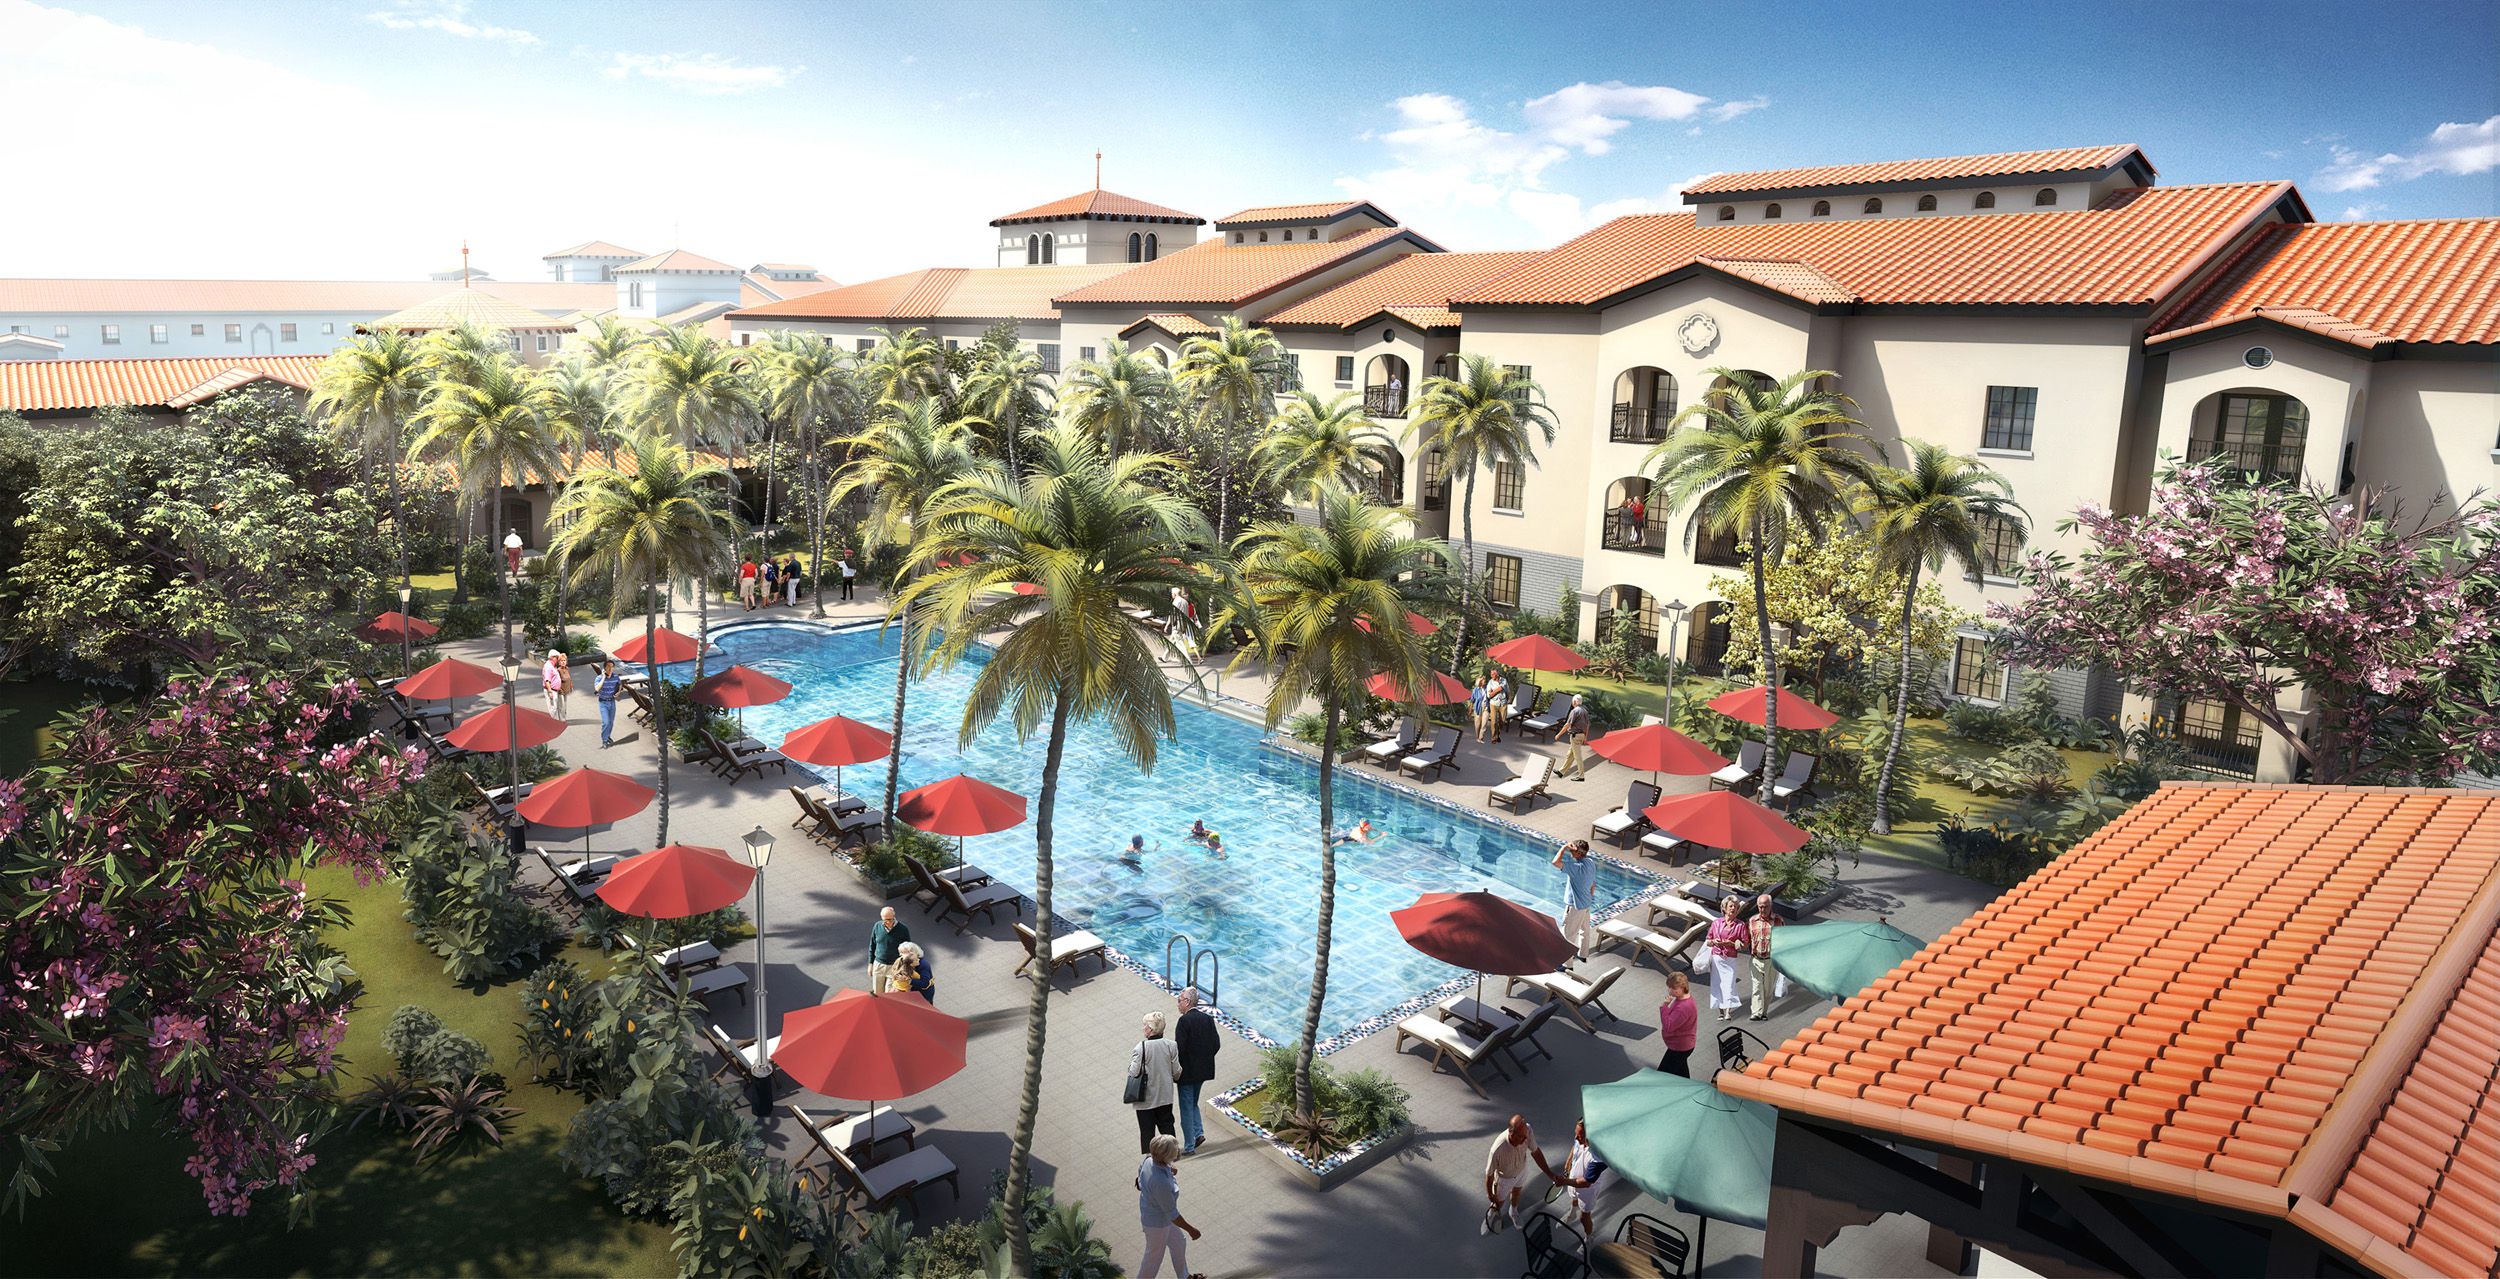 At Villages Of Windsor In Palm Beach County Fla Interest The Forthcoming Senior Living Community Has Been Immediately Strong With Deposits Already